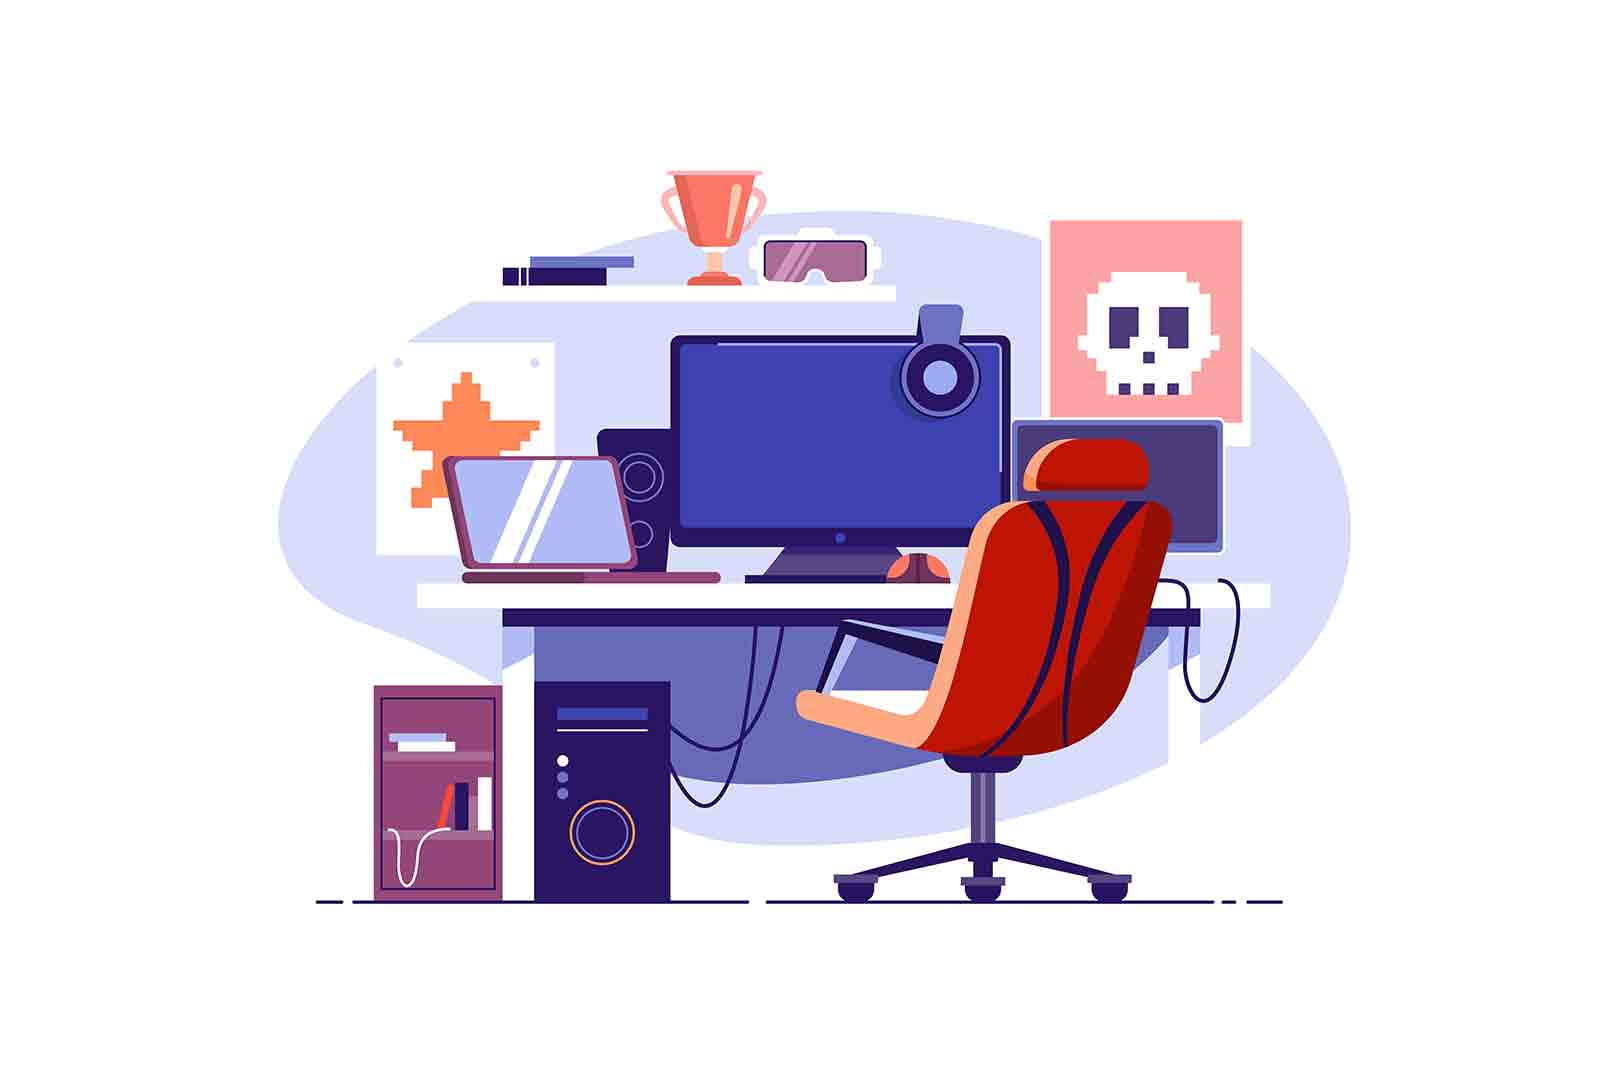 Multiple computer monitors for gaming vector illustration. Gamer room, play video games flat style. Entertainment, fun, addiction concept